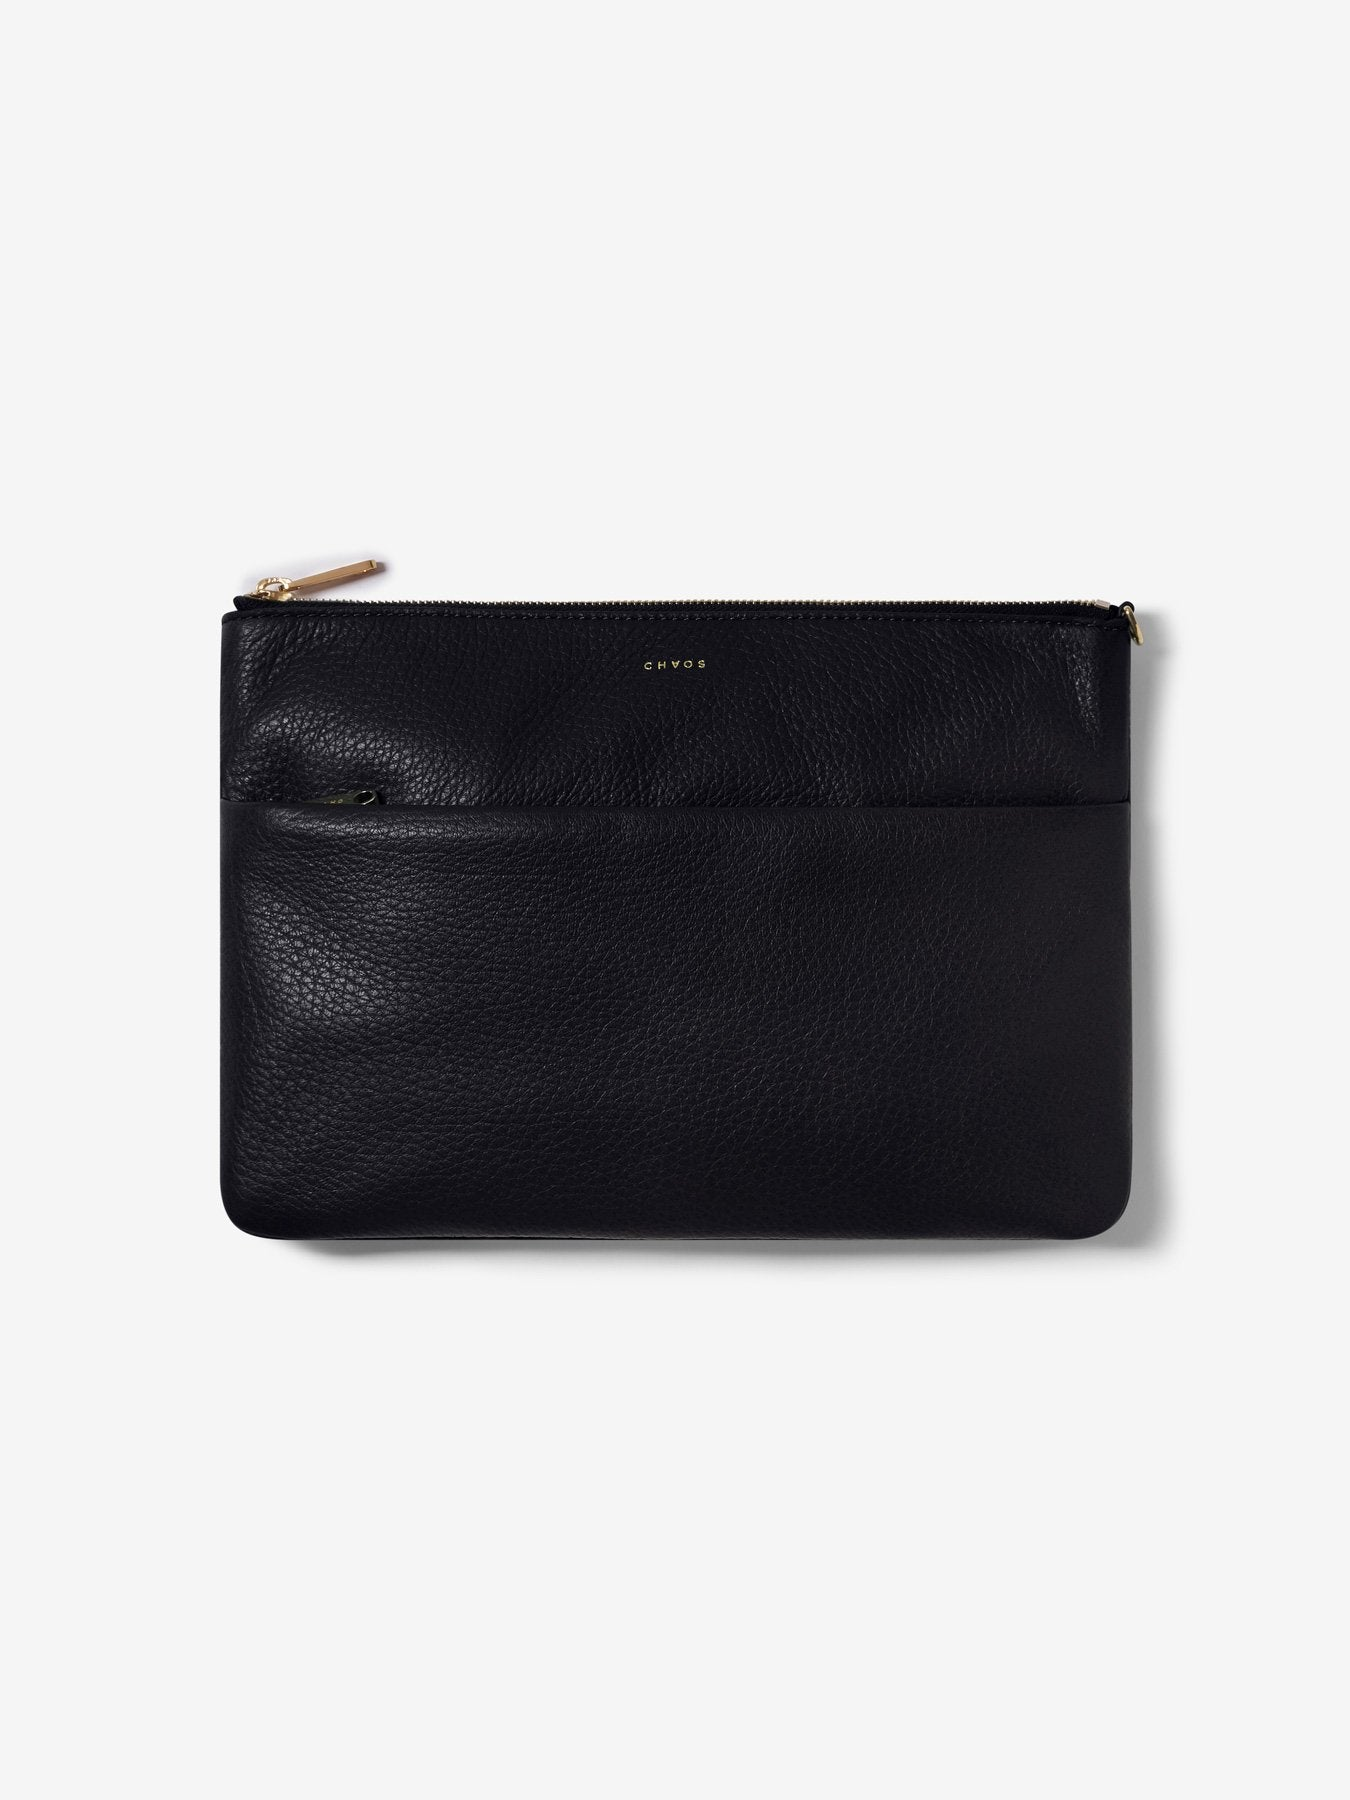 Classic Leather Clutch Bag